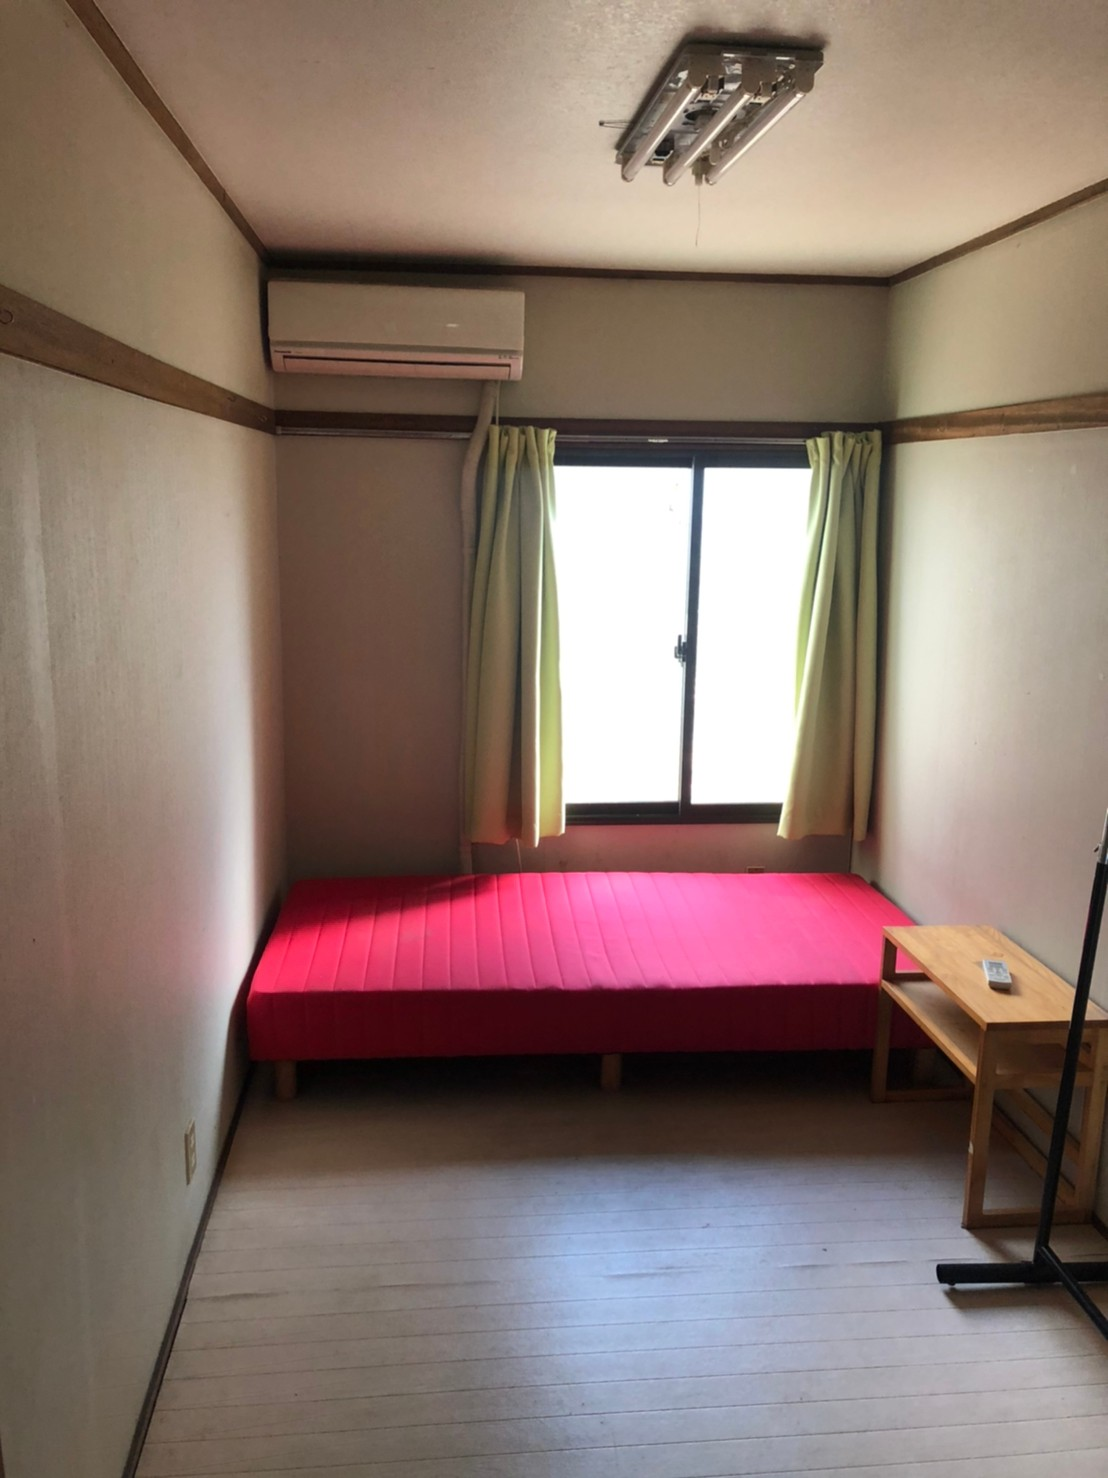 """Tokyu Oimachi line Todoroki station☆Setagaya House☆¥34,000~private room """"Negotiable whether 2 people could be accommodated in one private room"""""""